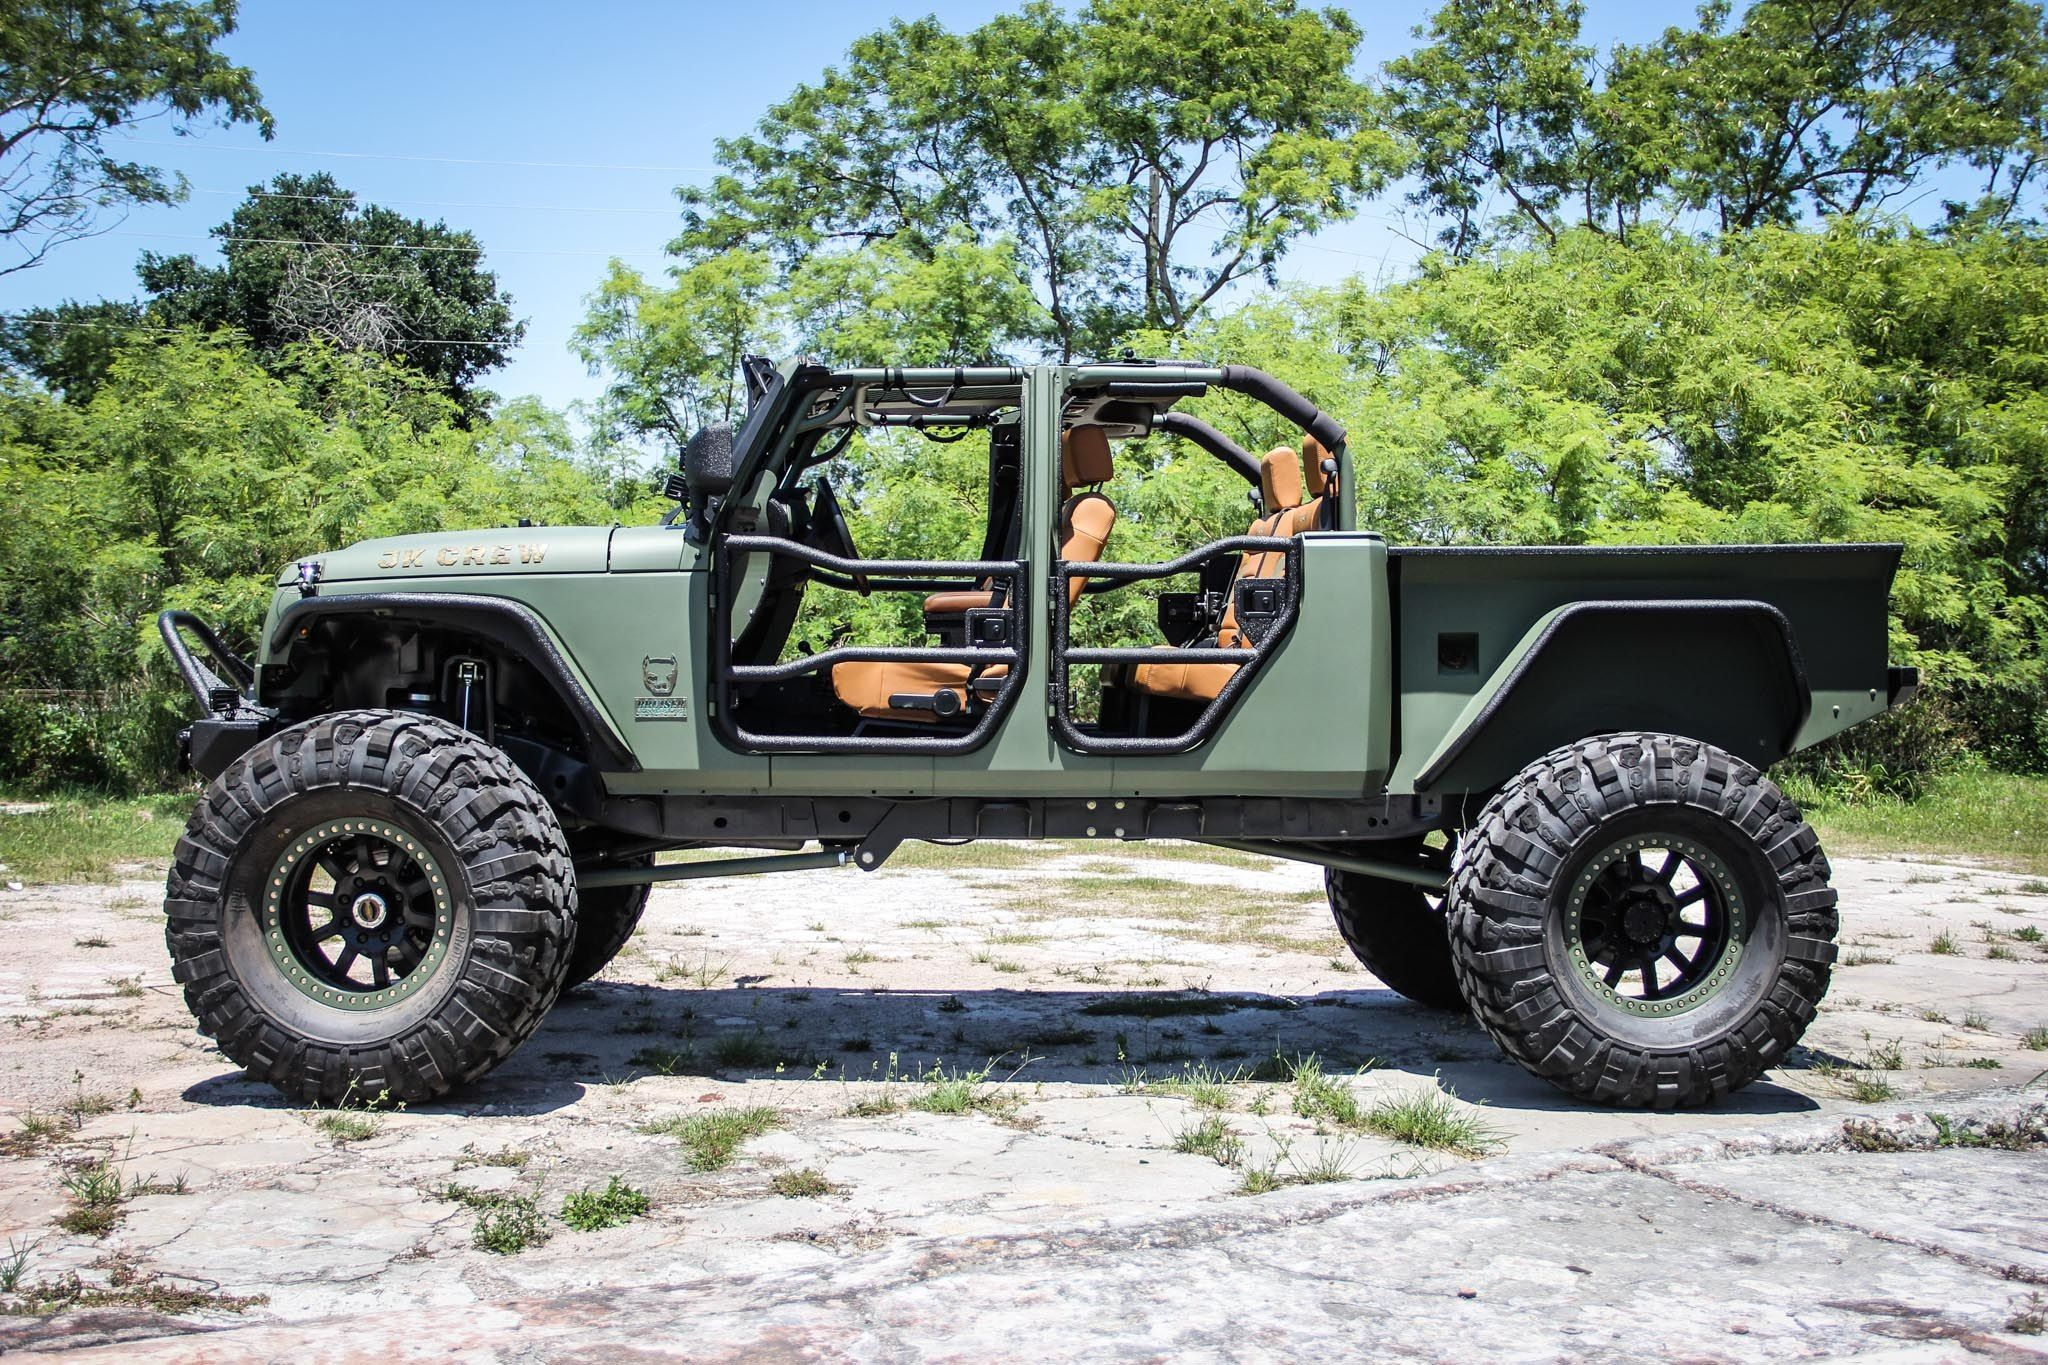 jeep jk wrangler truck conversion jeep life pinterest. Black Bedroom Furniture Sets. Home Design Ideas